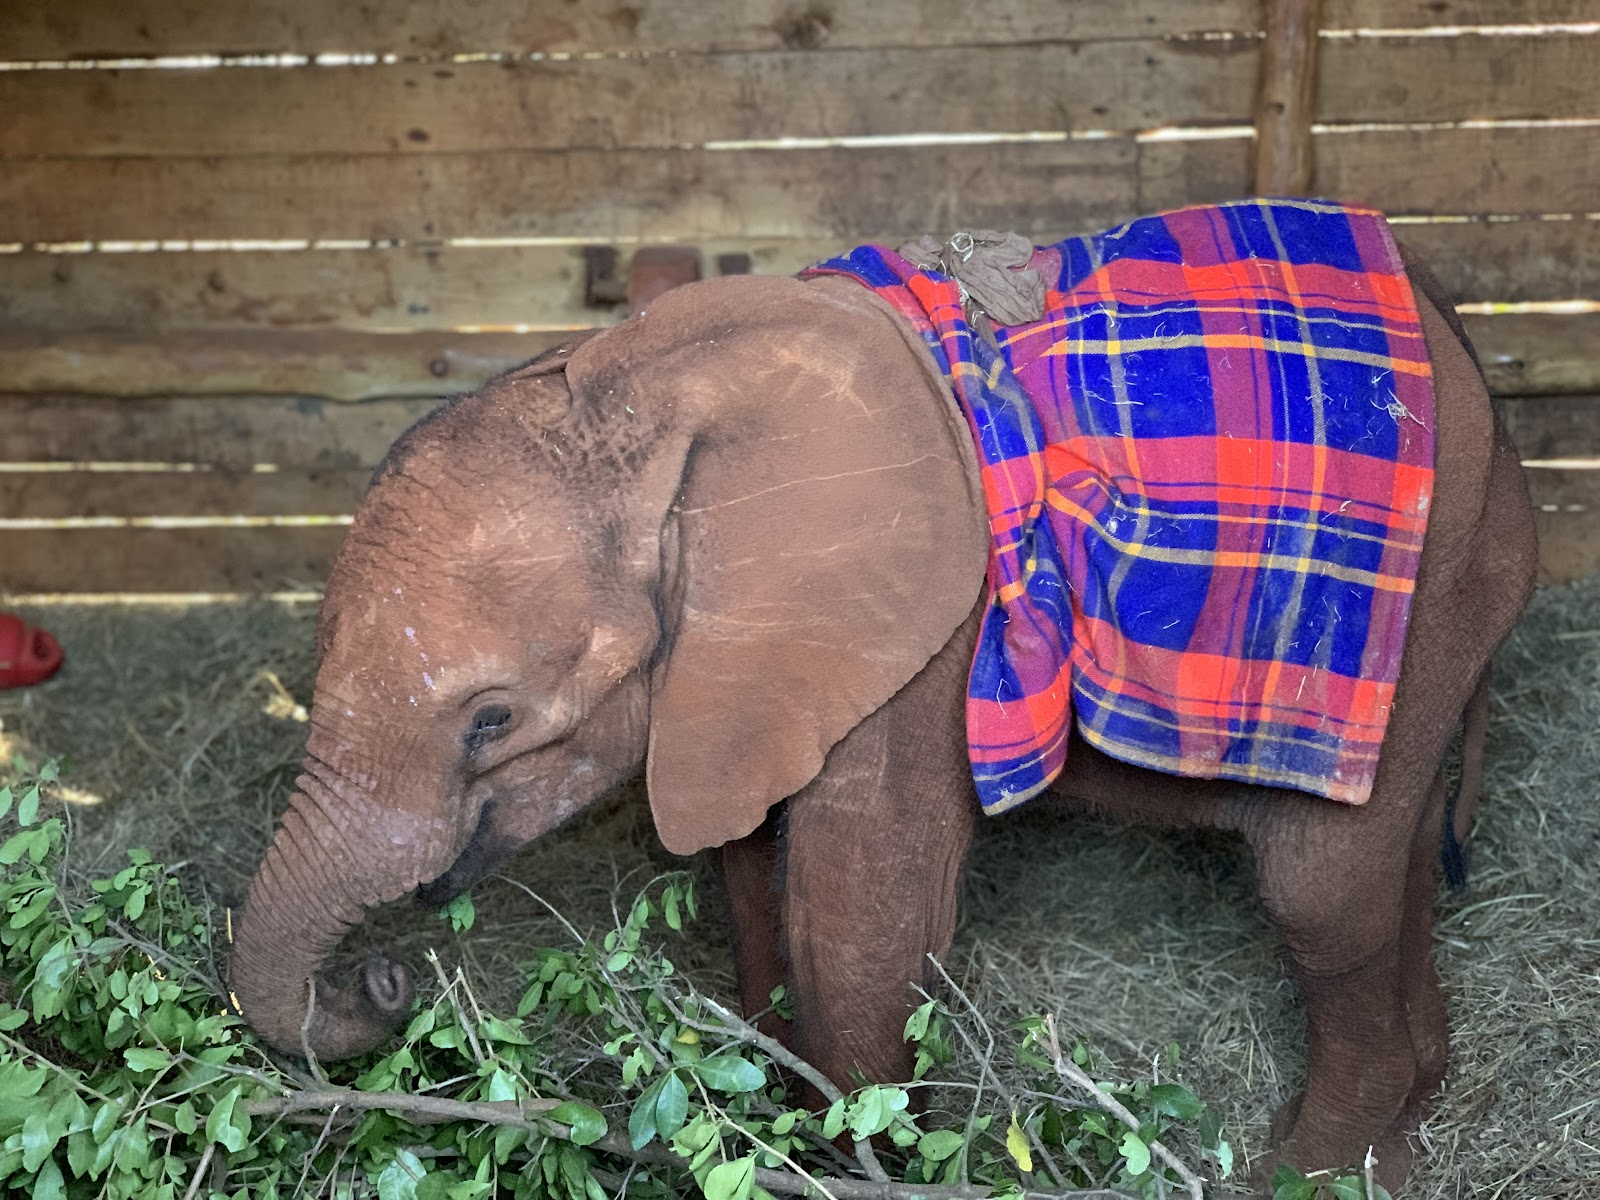 DSWT - David Sheldrick Wildlife Trust. Photo by Young Lee